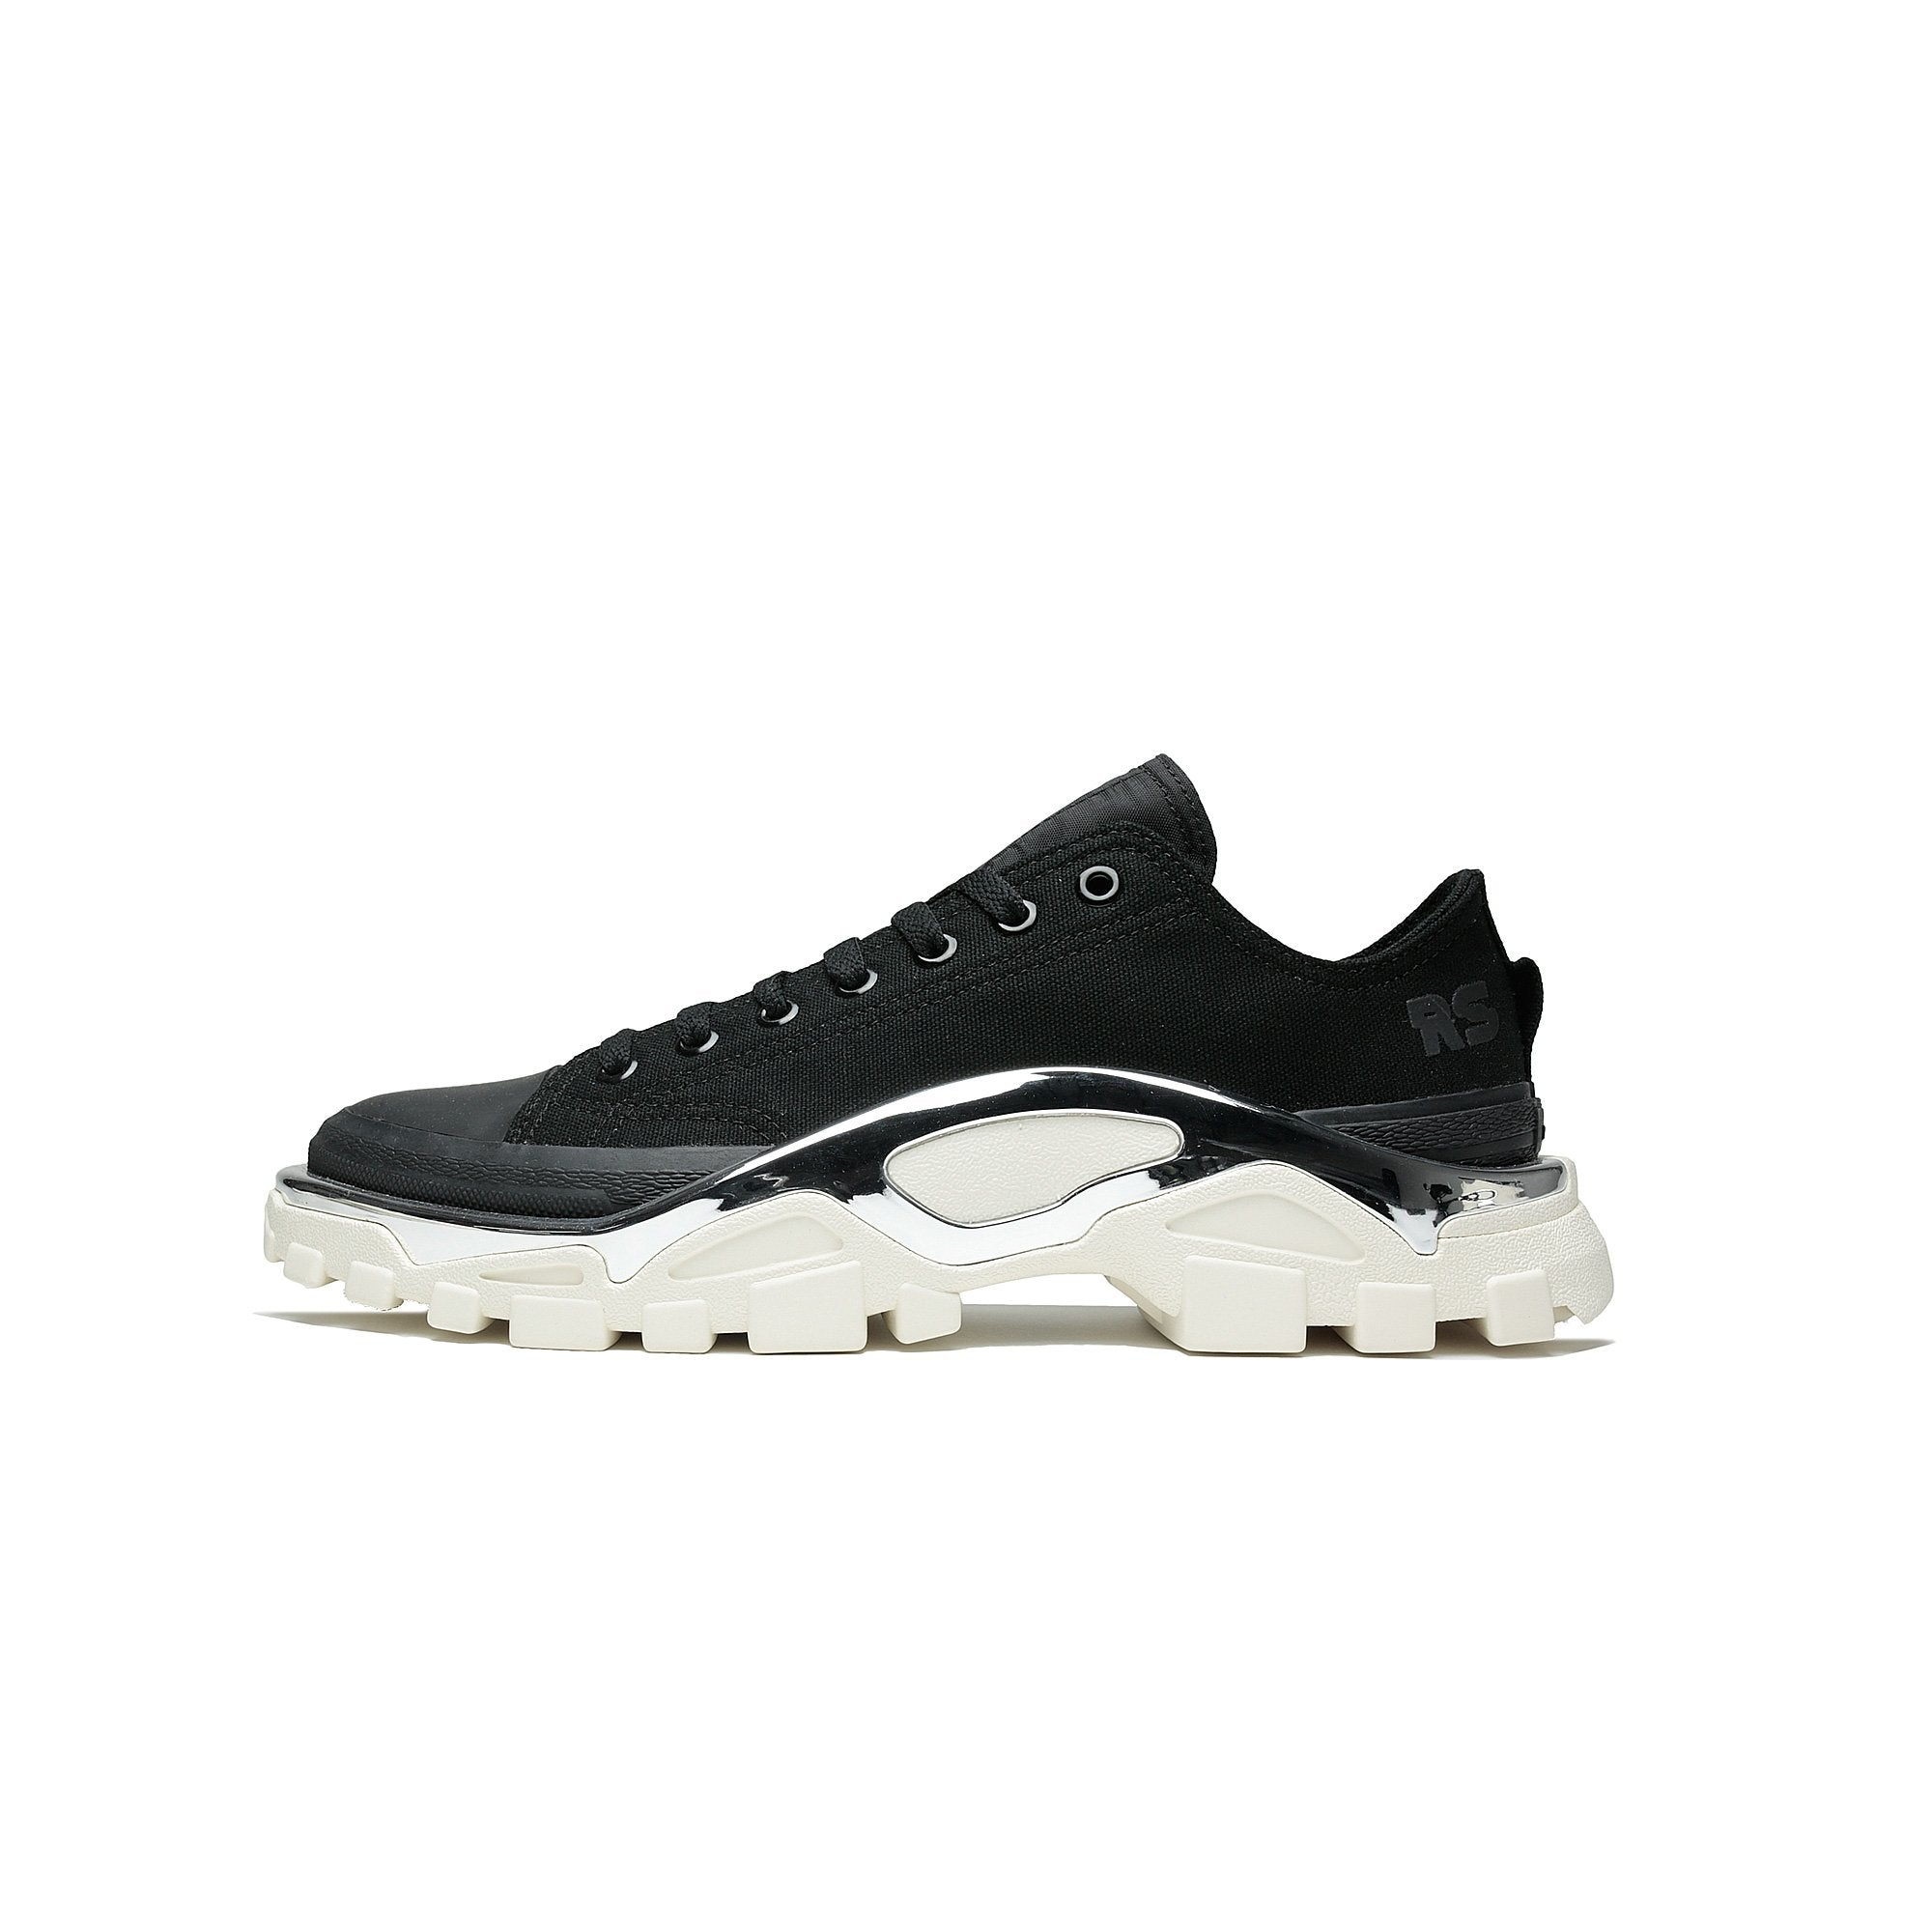 4c4870dd5750 Details about Mens Adidas x Raf Simmons Detroit Runner Oreo Core Black  Cream White F34245